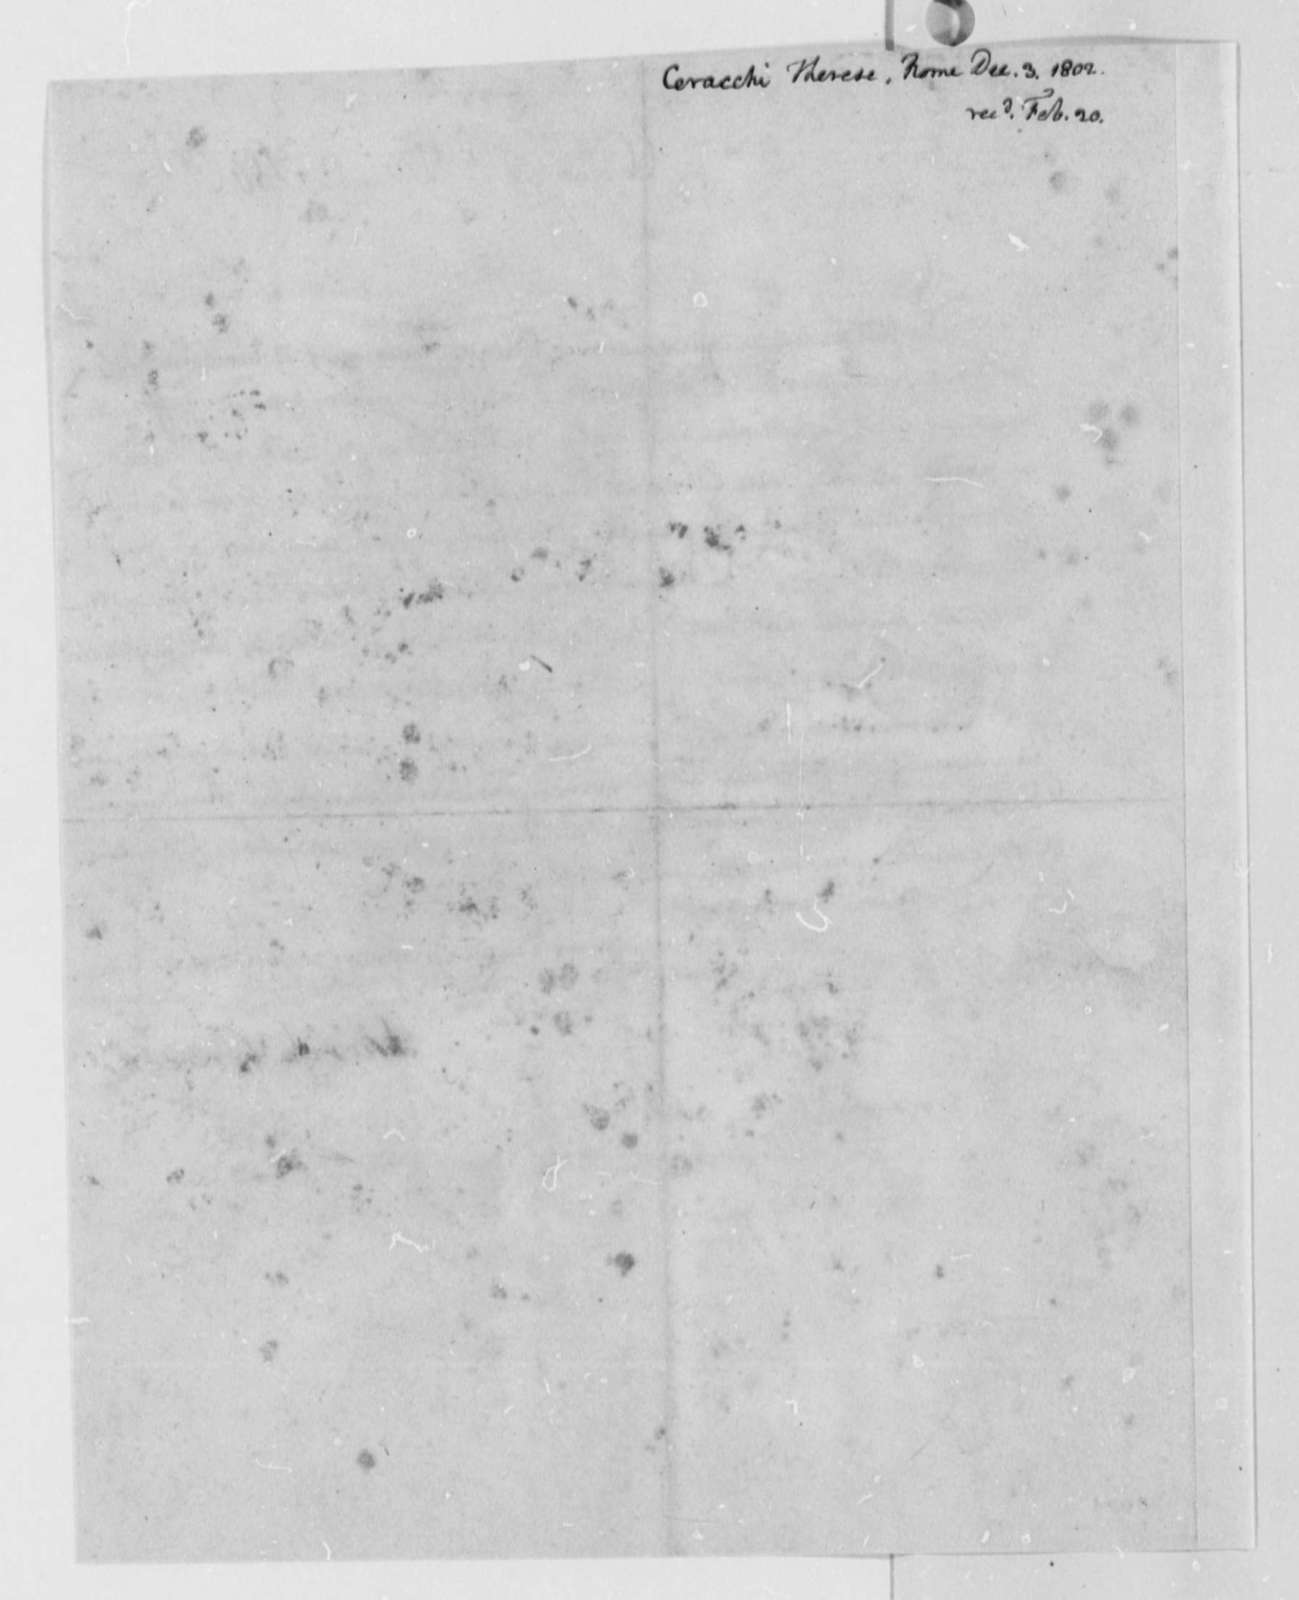 Therese Ceracchi to Thomas Jefferson, December 3, 1802, in French